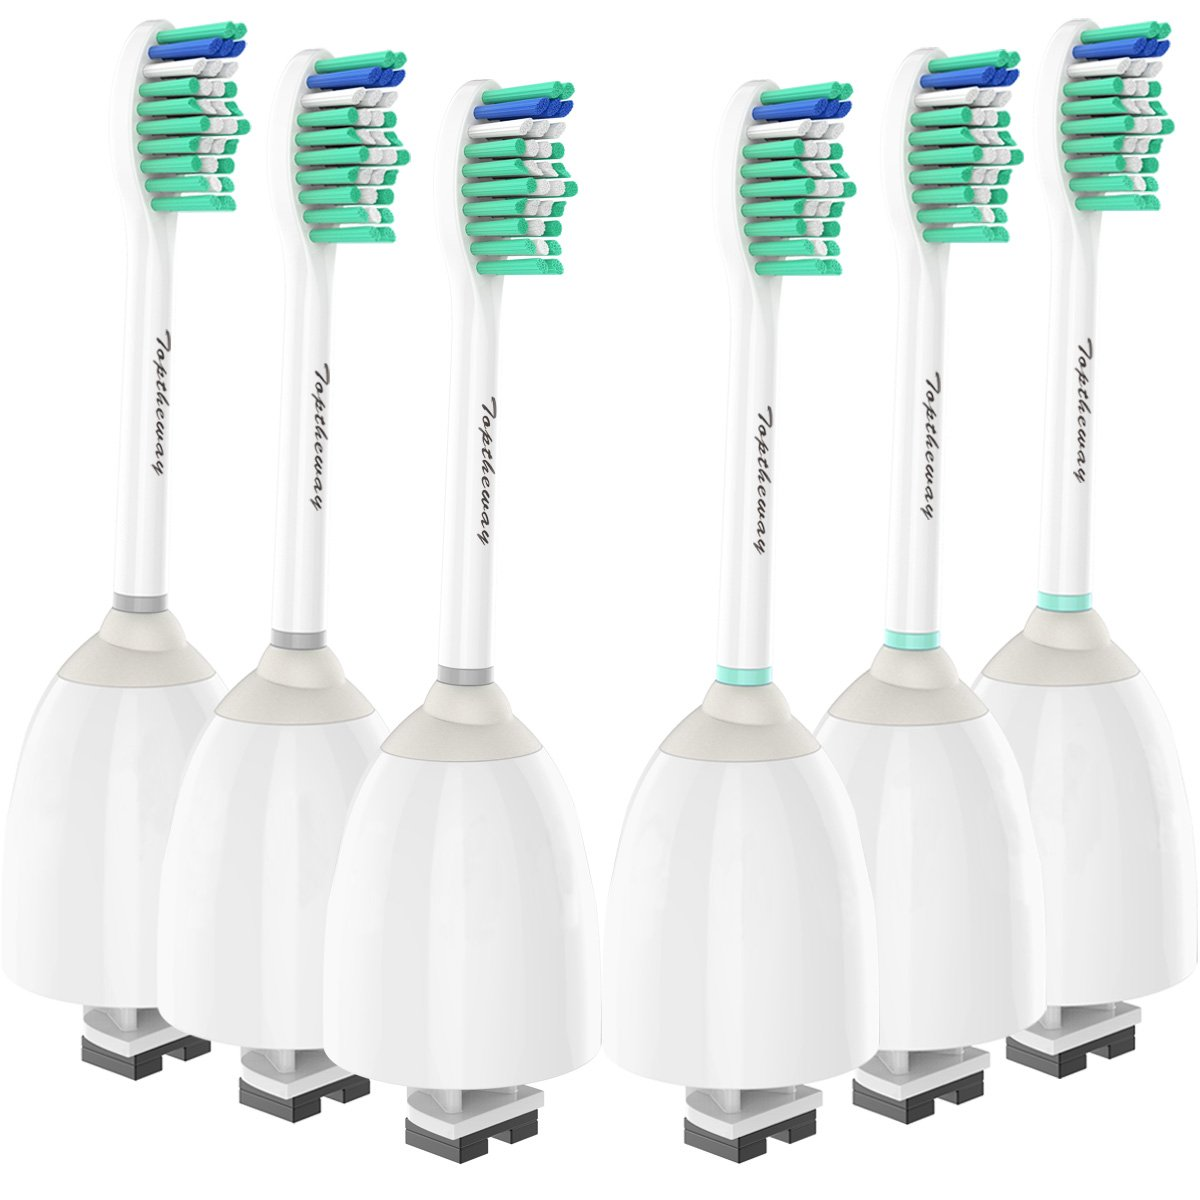 Replacement Brush Heads for Philips Sonicare E-Series Toothbrush HX7022/66, Fit Sonicare Essence, Xtreme, Elite, Advance and CleanCare Screw-On Philips Handles, 6 Pack by Toptheway